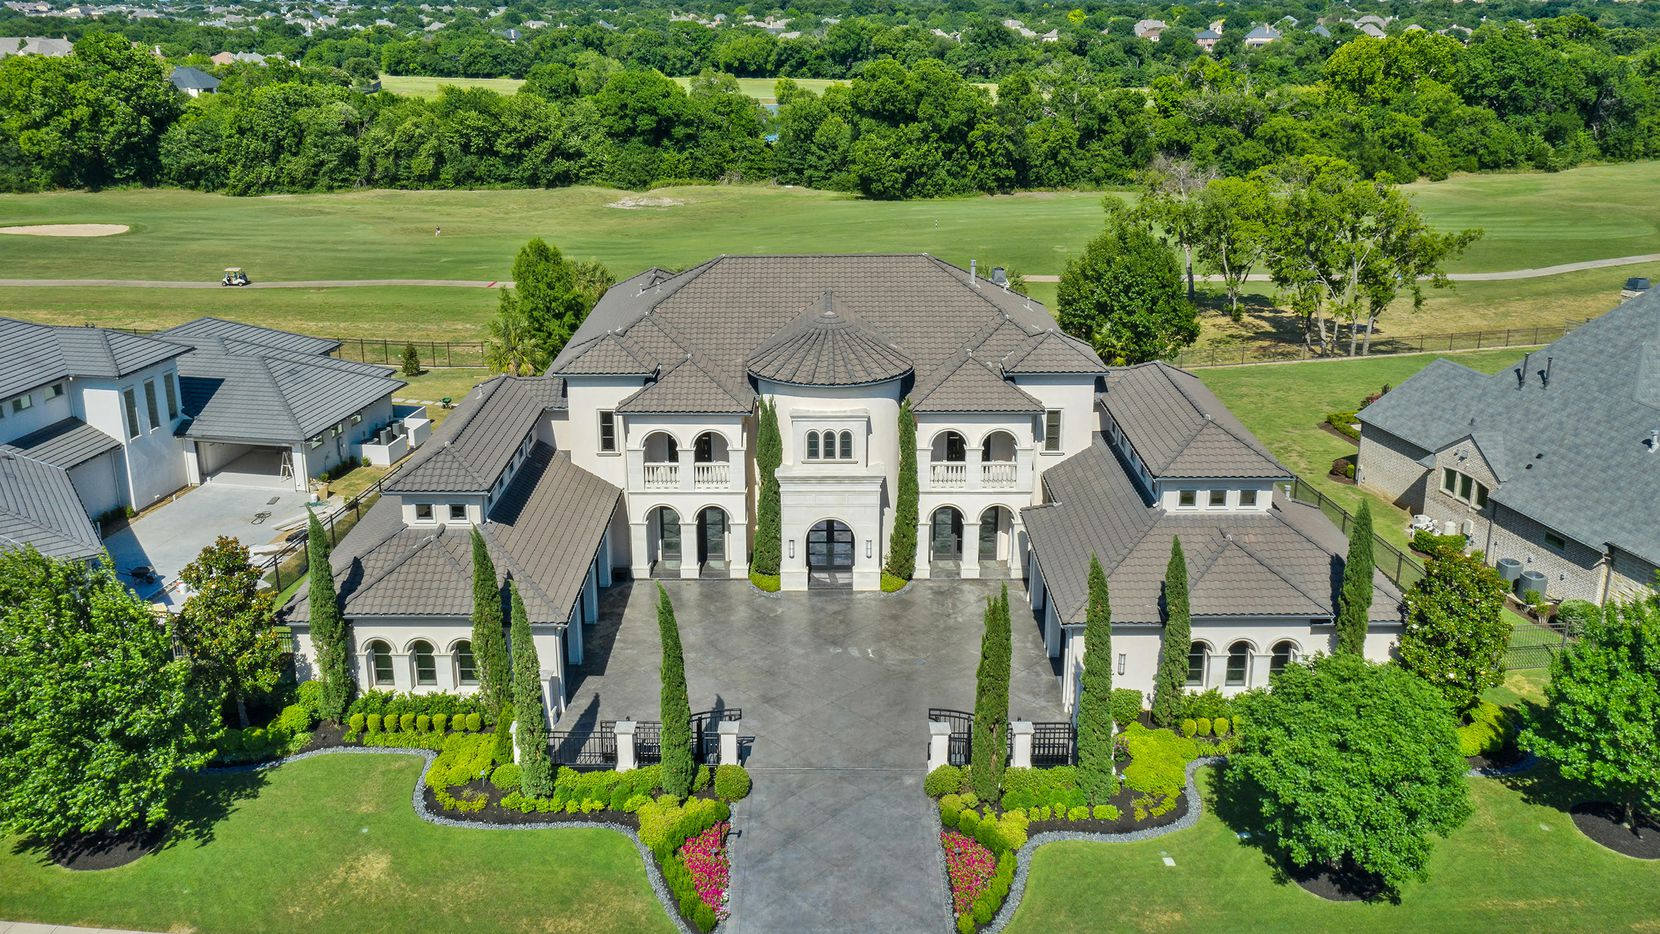 Located in a gated community, the estate at 414 Lakeway Drive in Allen offers golf course views and luxury amenities inside and outside. It is priced at $2,850,000.